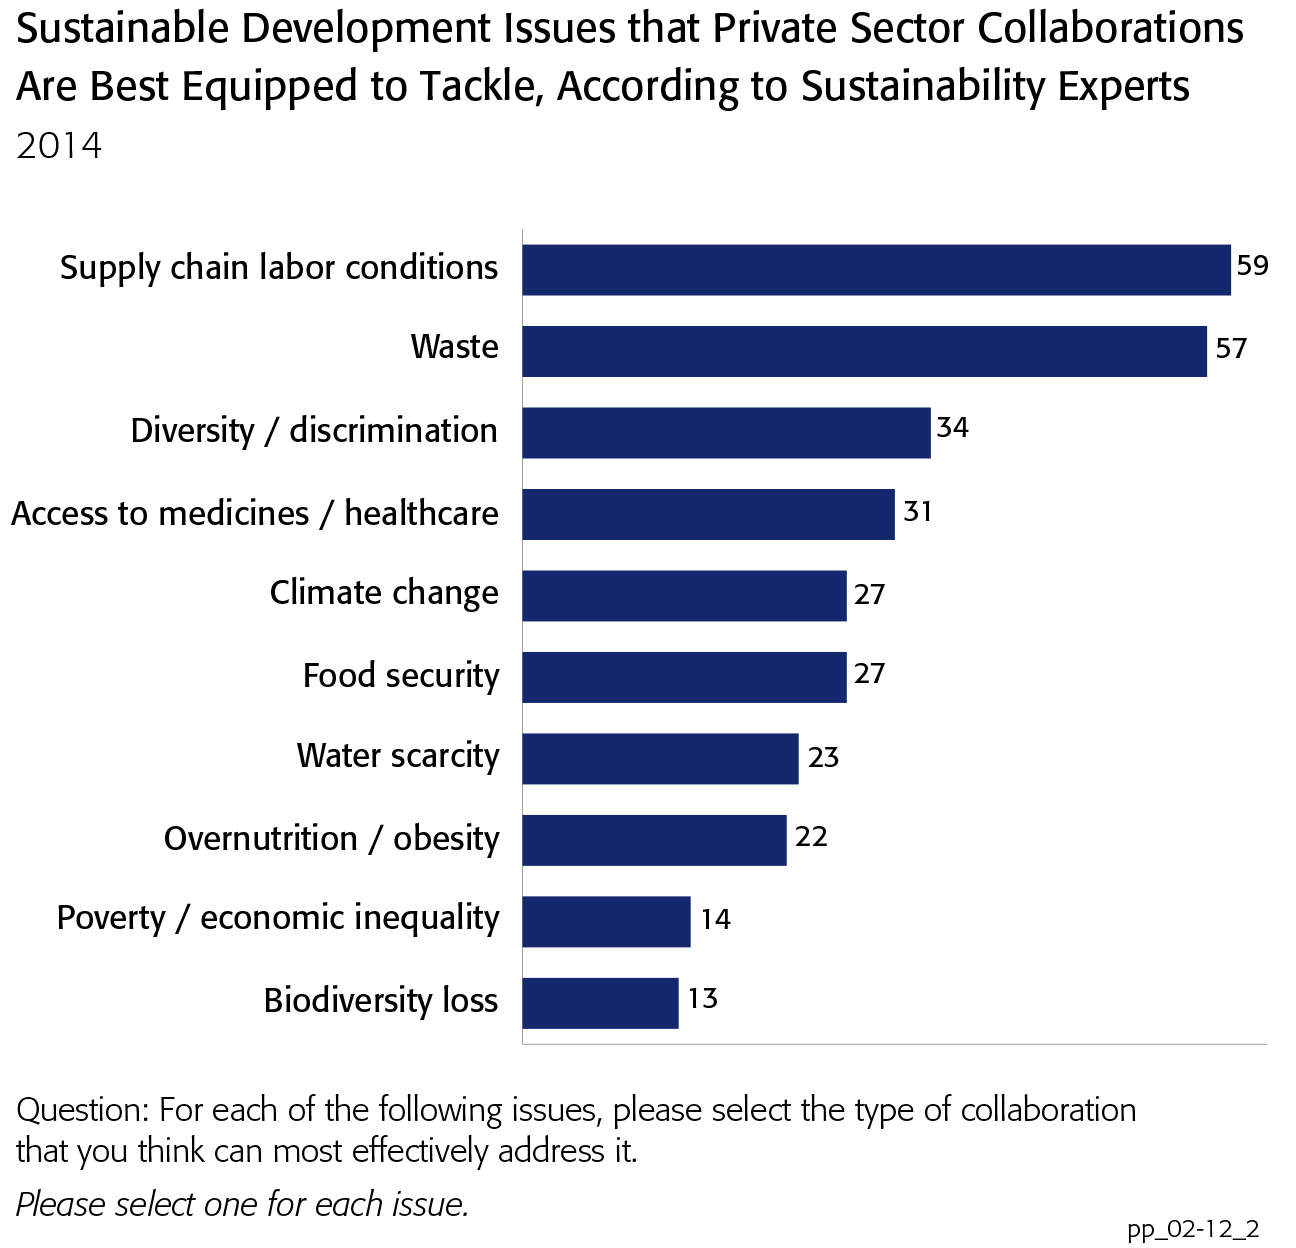 GlobeScan/Sustainability infographic sustainability issues that private sector collabroations are best equipped to handle, according to sustainability experts